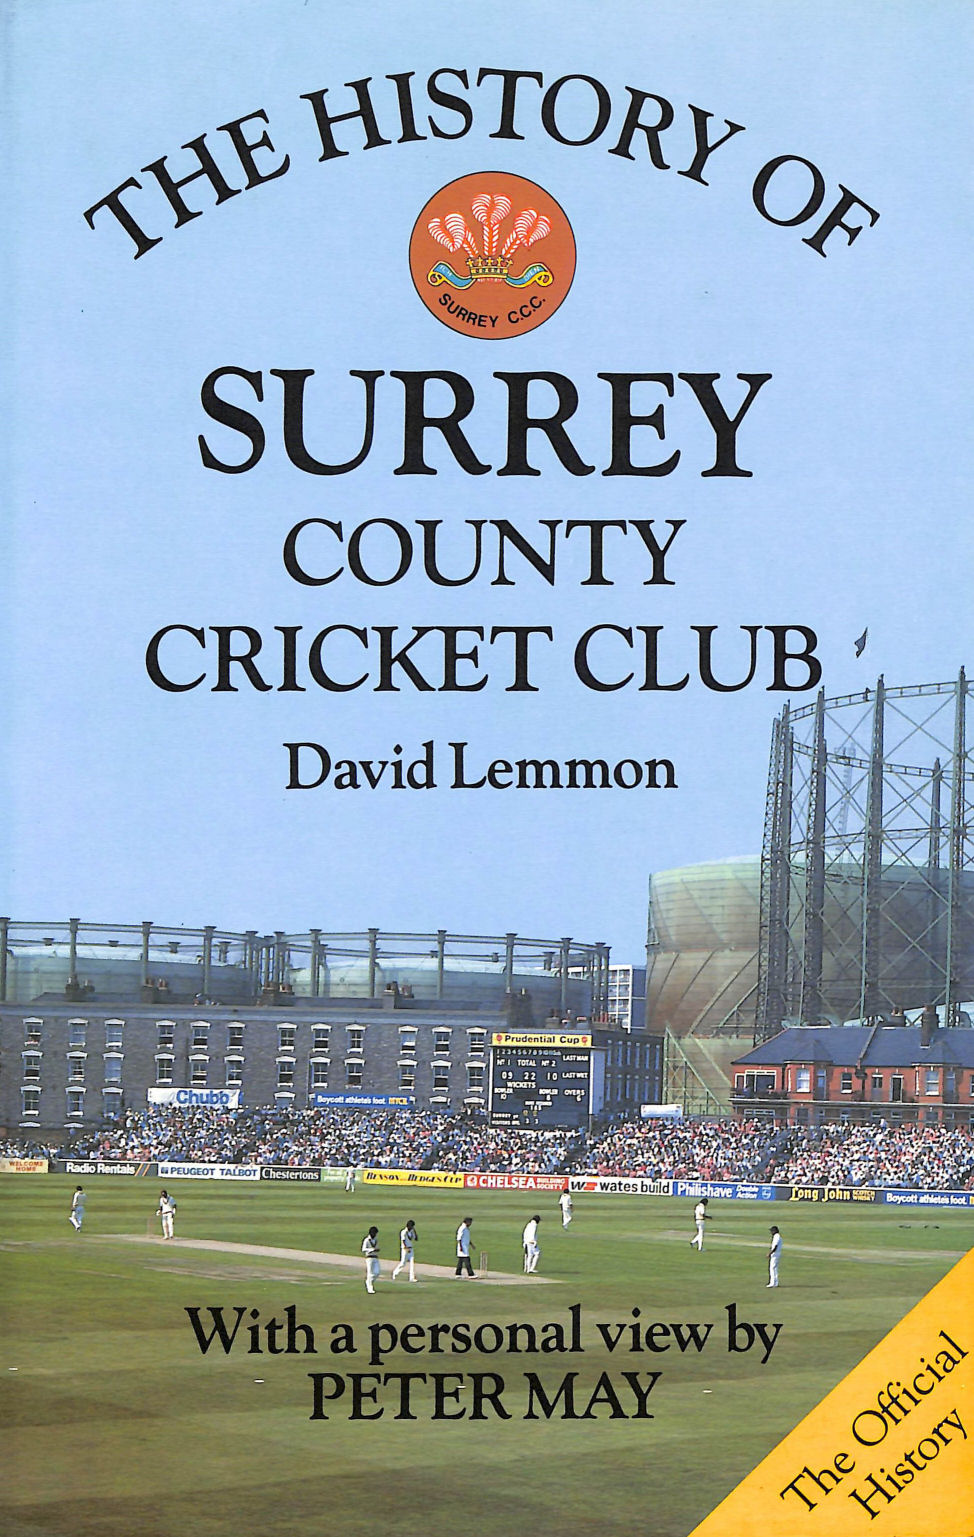 LEMMON, DAVID; MAY, PETER; MAY, PETER [FOREWORD] - The History of Surrey County Cricket Club (Christopher Helm County Cricket)